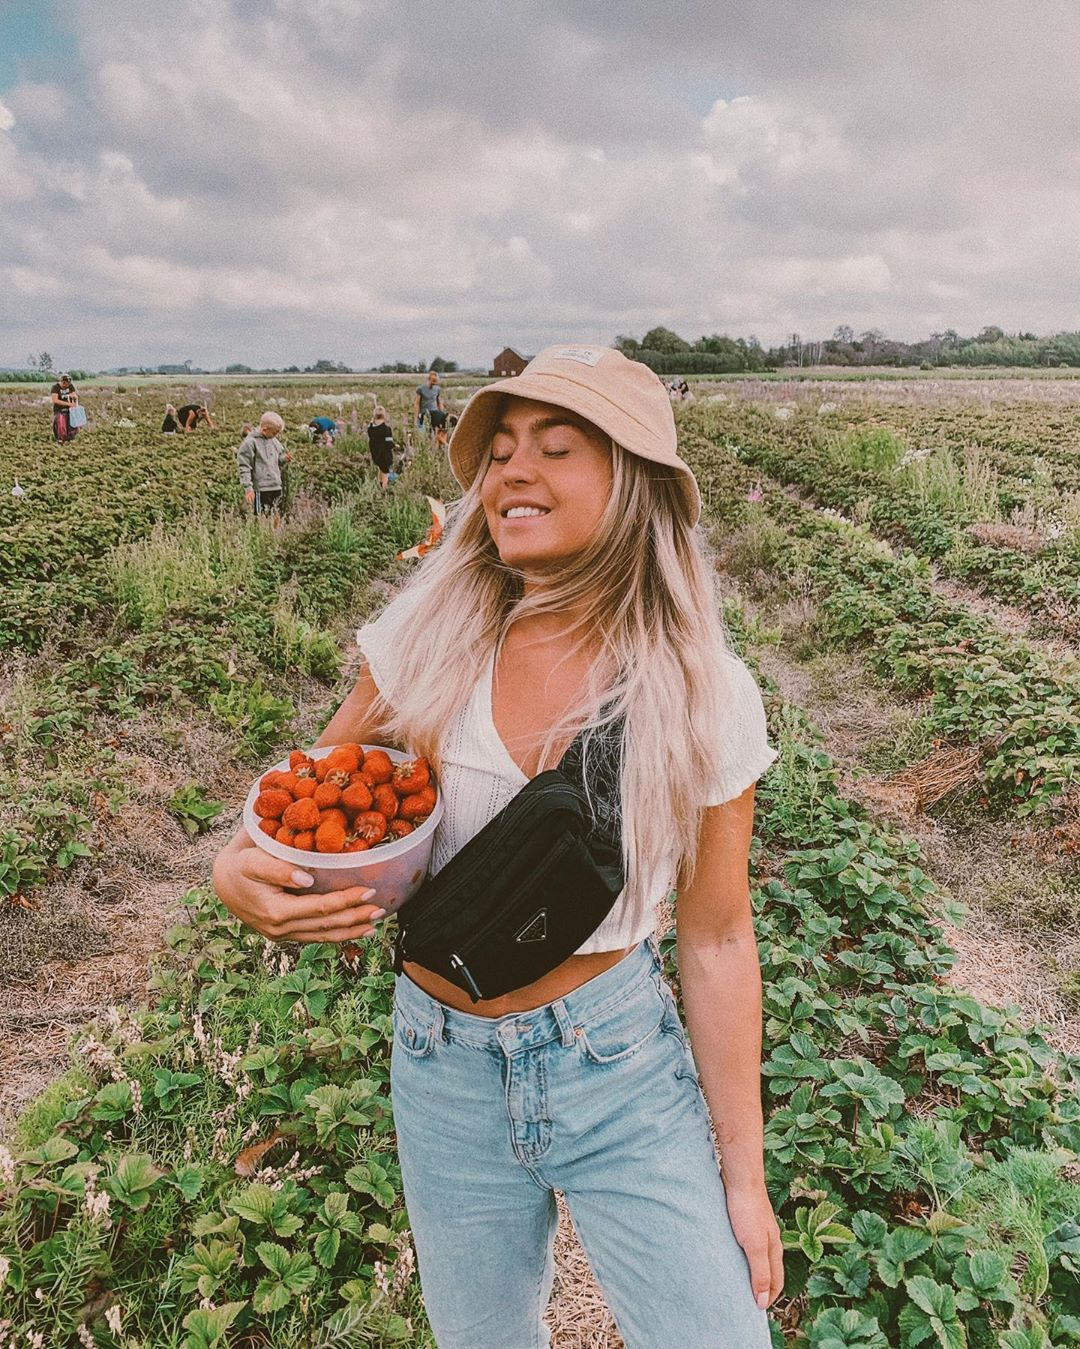 "Angelica Blick on Instagram: ""STRAWBERRY PICKING 🍓 isn't this just amazing?! We went to this cute little place in Varberg and picked our on strawberries. It all ended up…"""